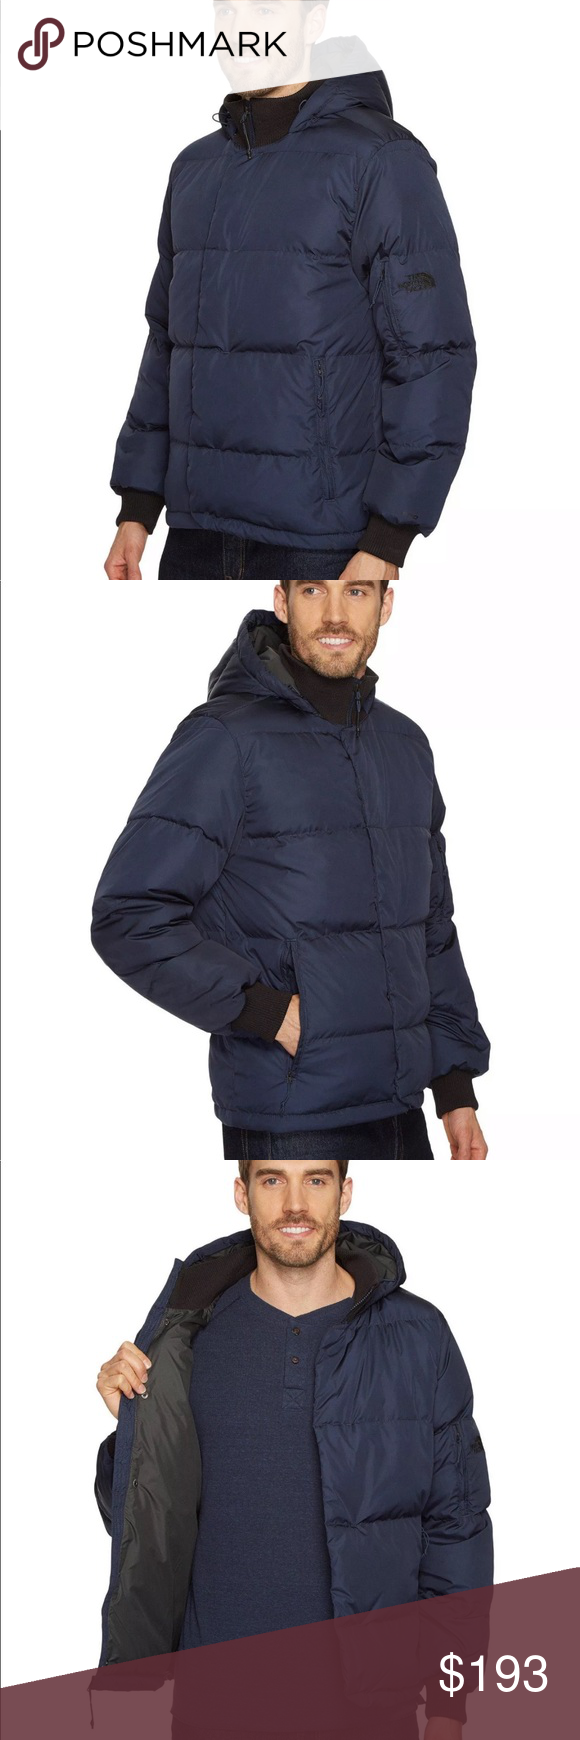 Men S The North Face Bedford Down Bomber Jacket Bomber Jacket Men S Coats And Jackets Jackets [ 1740 x 580 Pixel ]